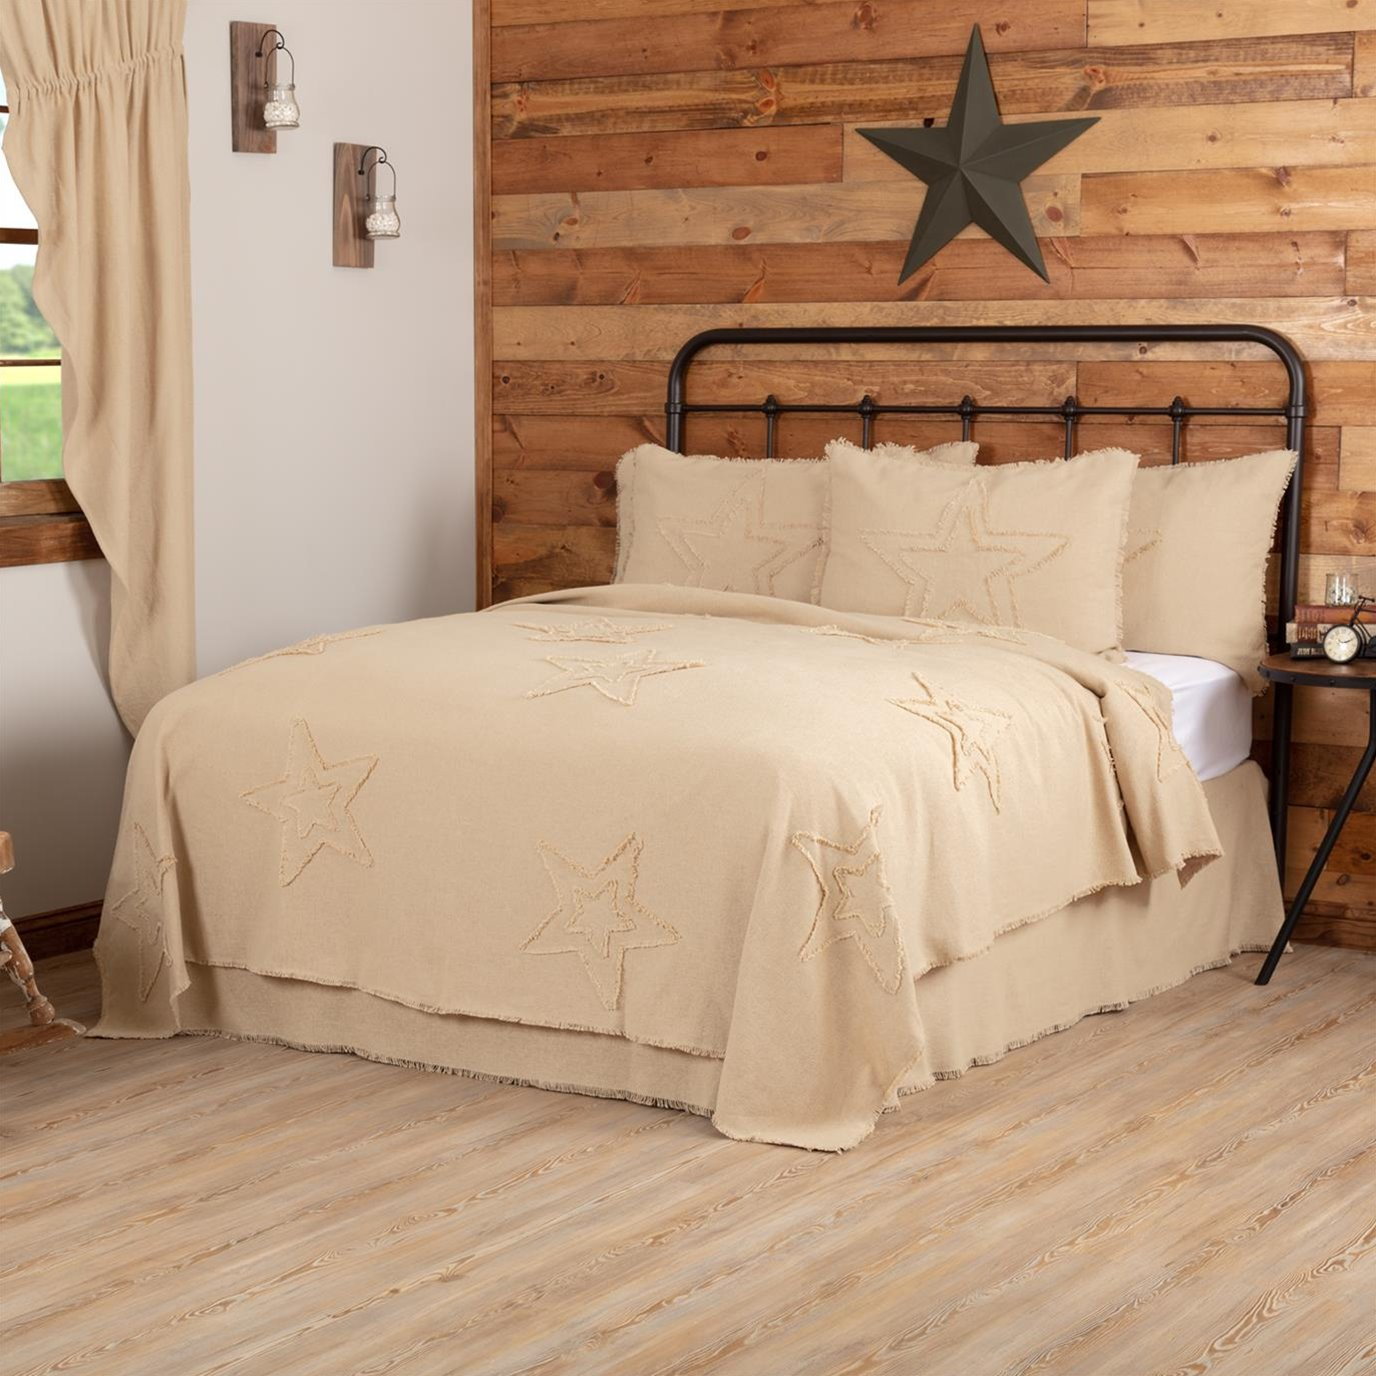 Burlap Vintage Star King Coverlet 108Wx96L